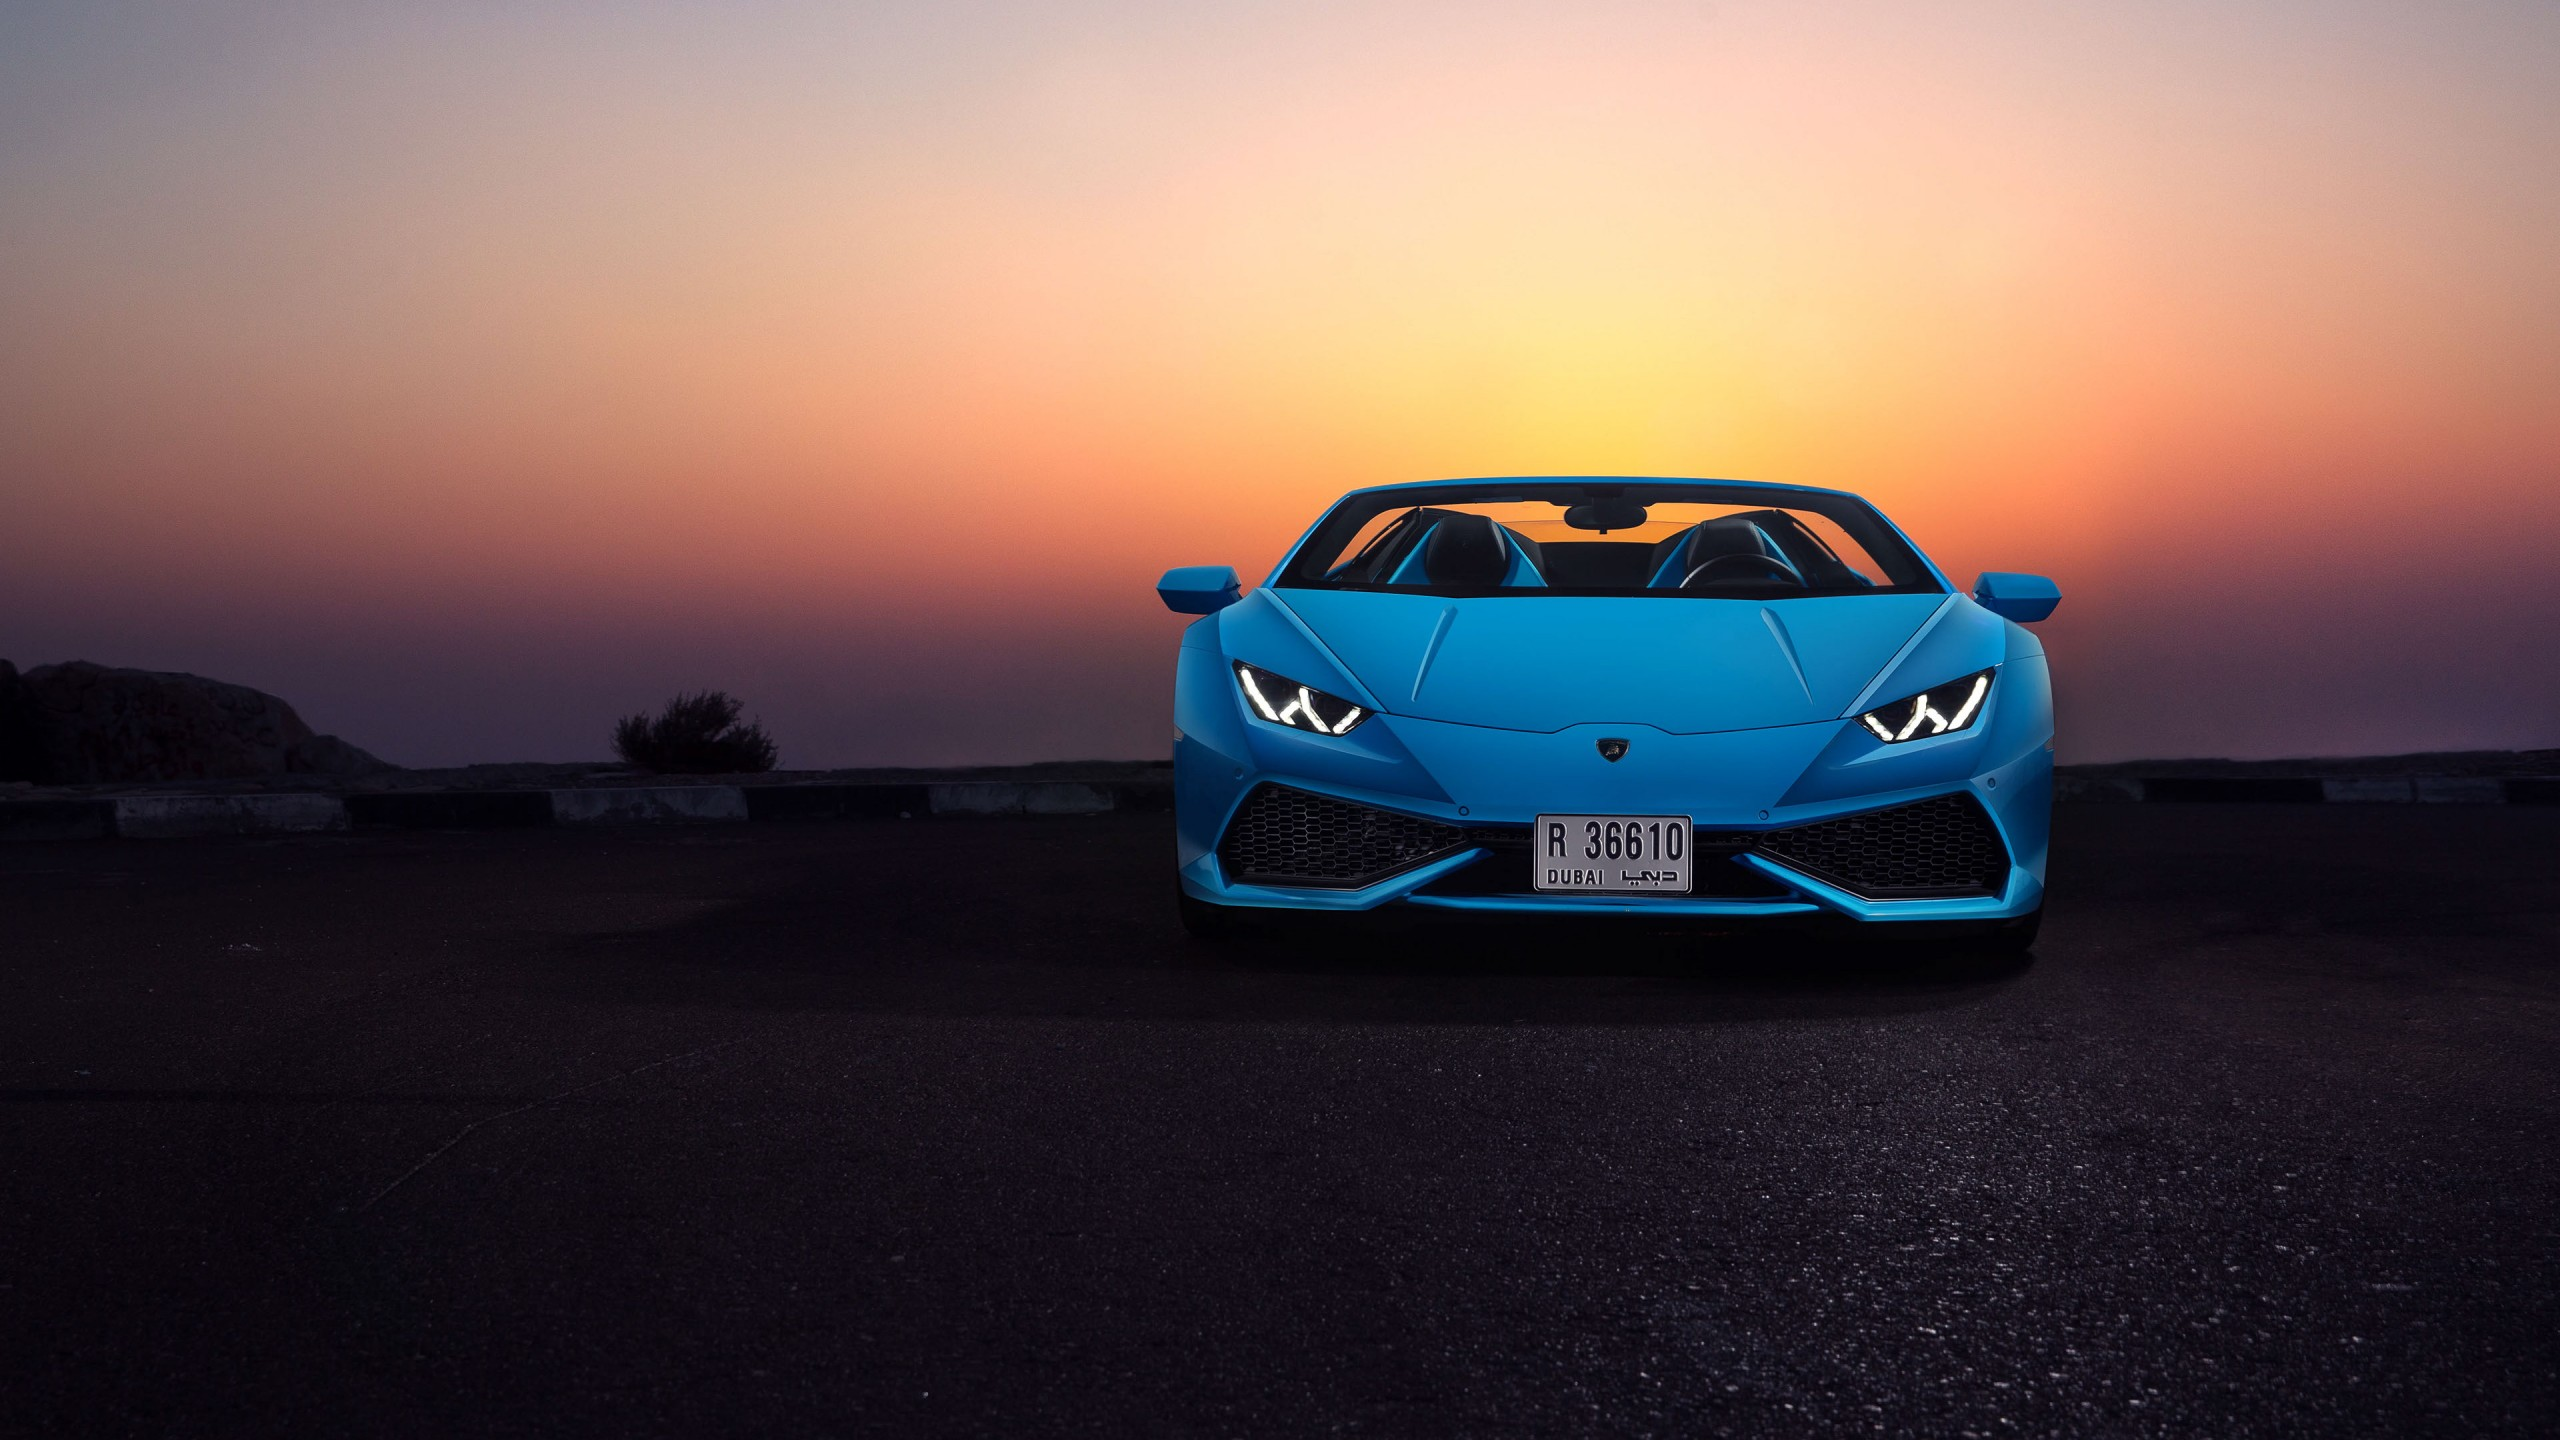 Lamborghini Huracan Spyder 4K 2 Wallpaper | HD Car ...